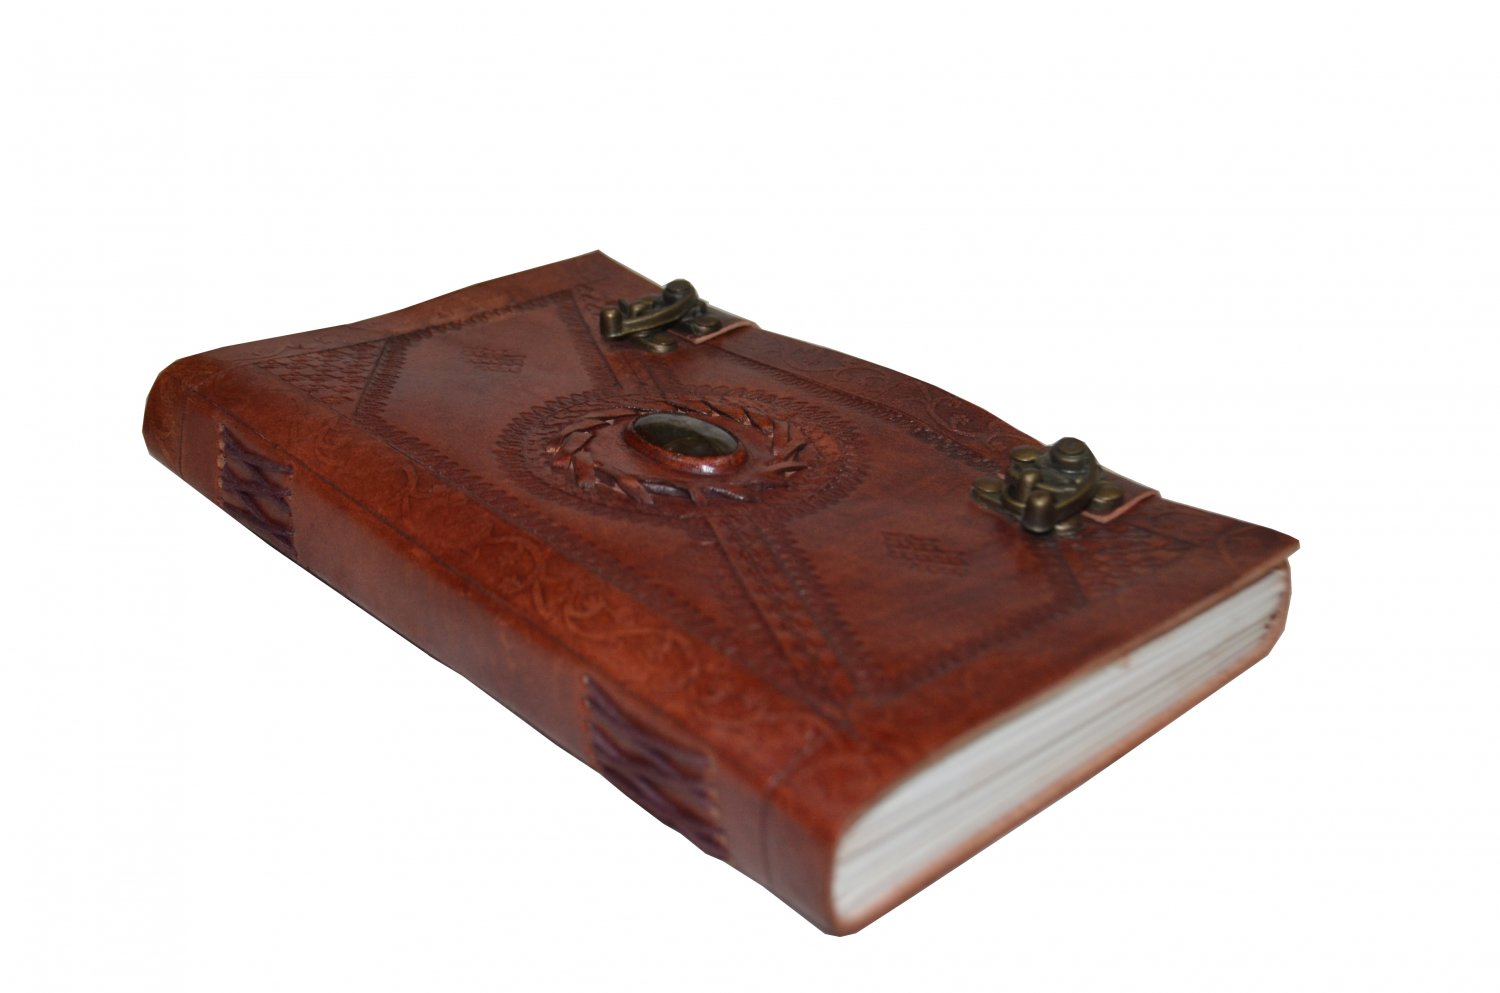 Embossed Sketchbook with gem stone and brass clasp